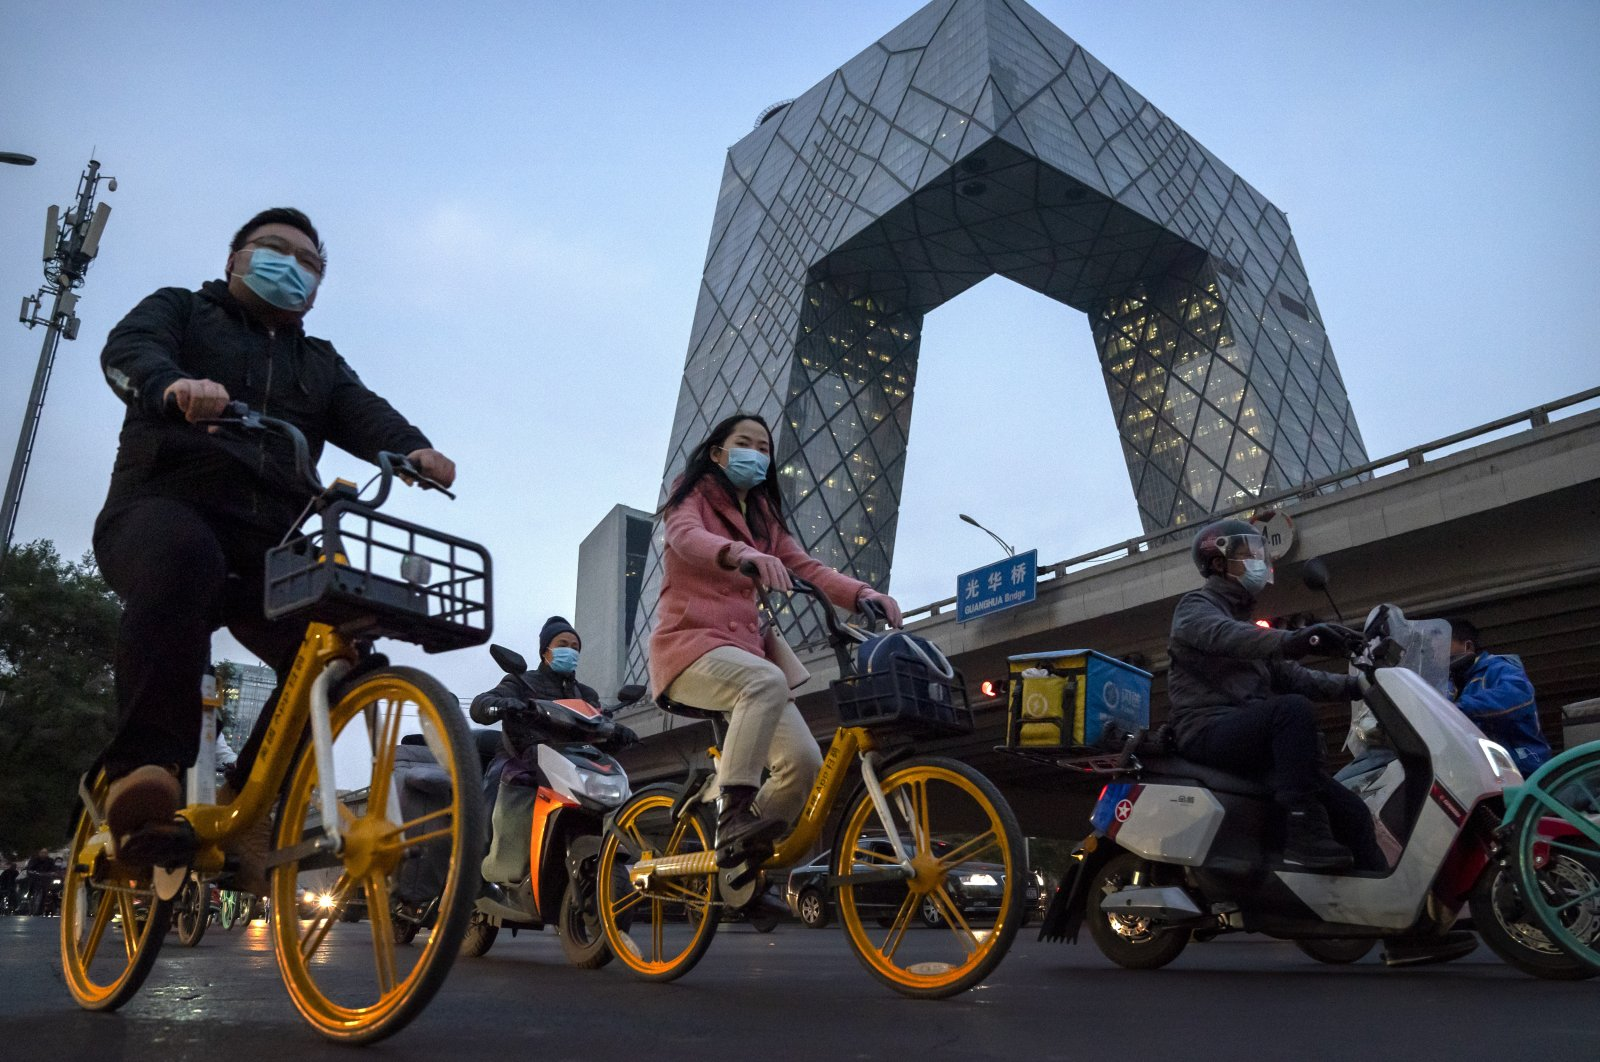 People wearing face masks to protect against the coronavirus spread ride bicycles in Beijing, China, Nov. 13, 2020. (AP Photo)